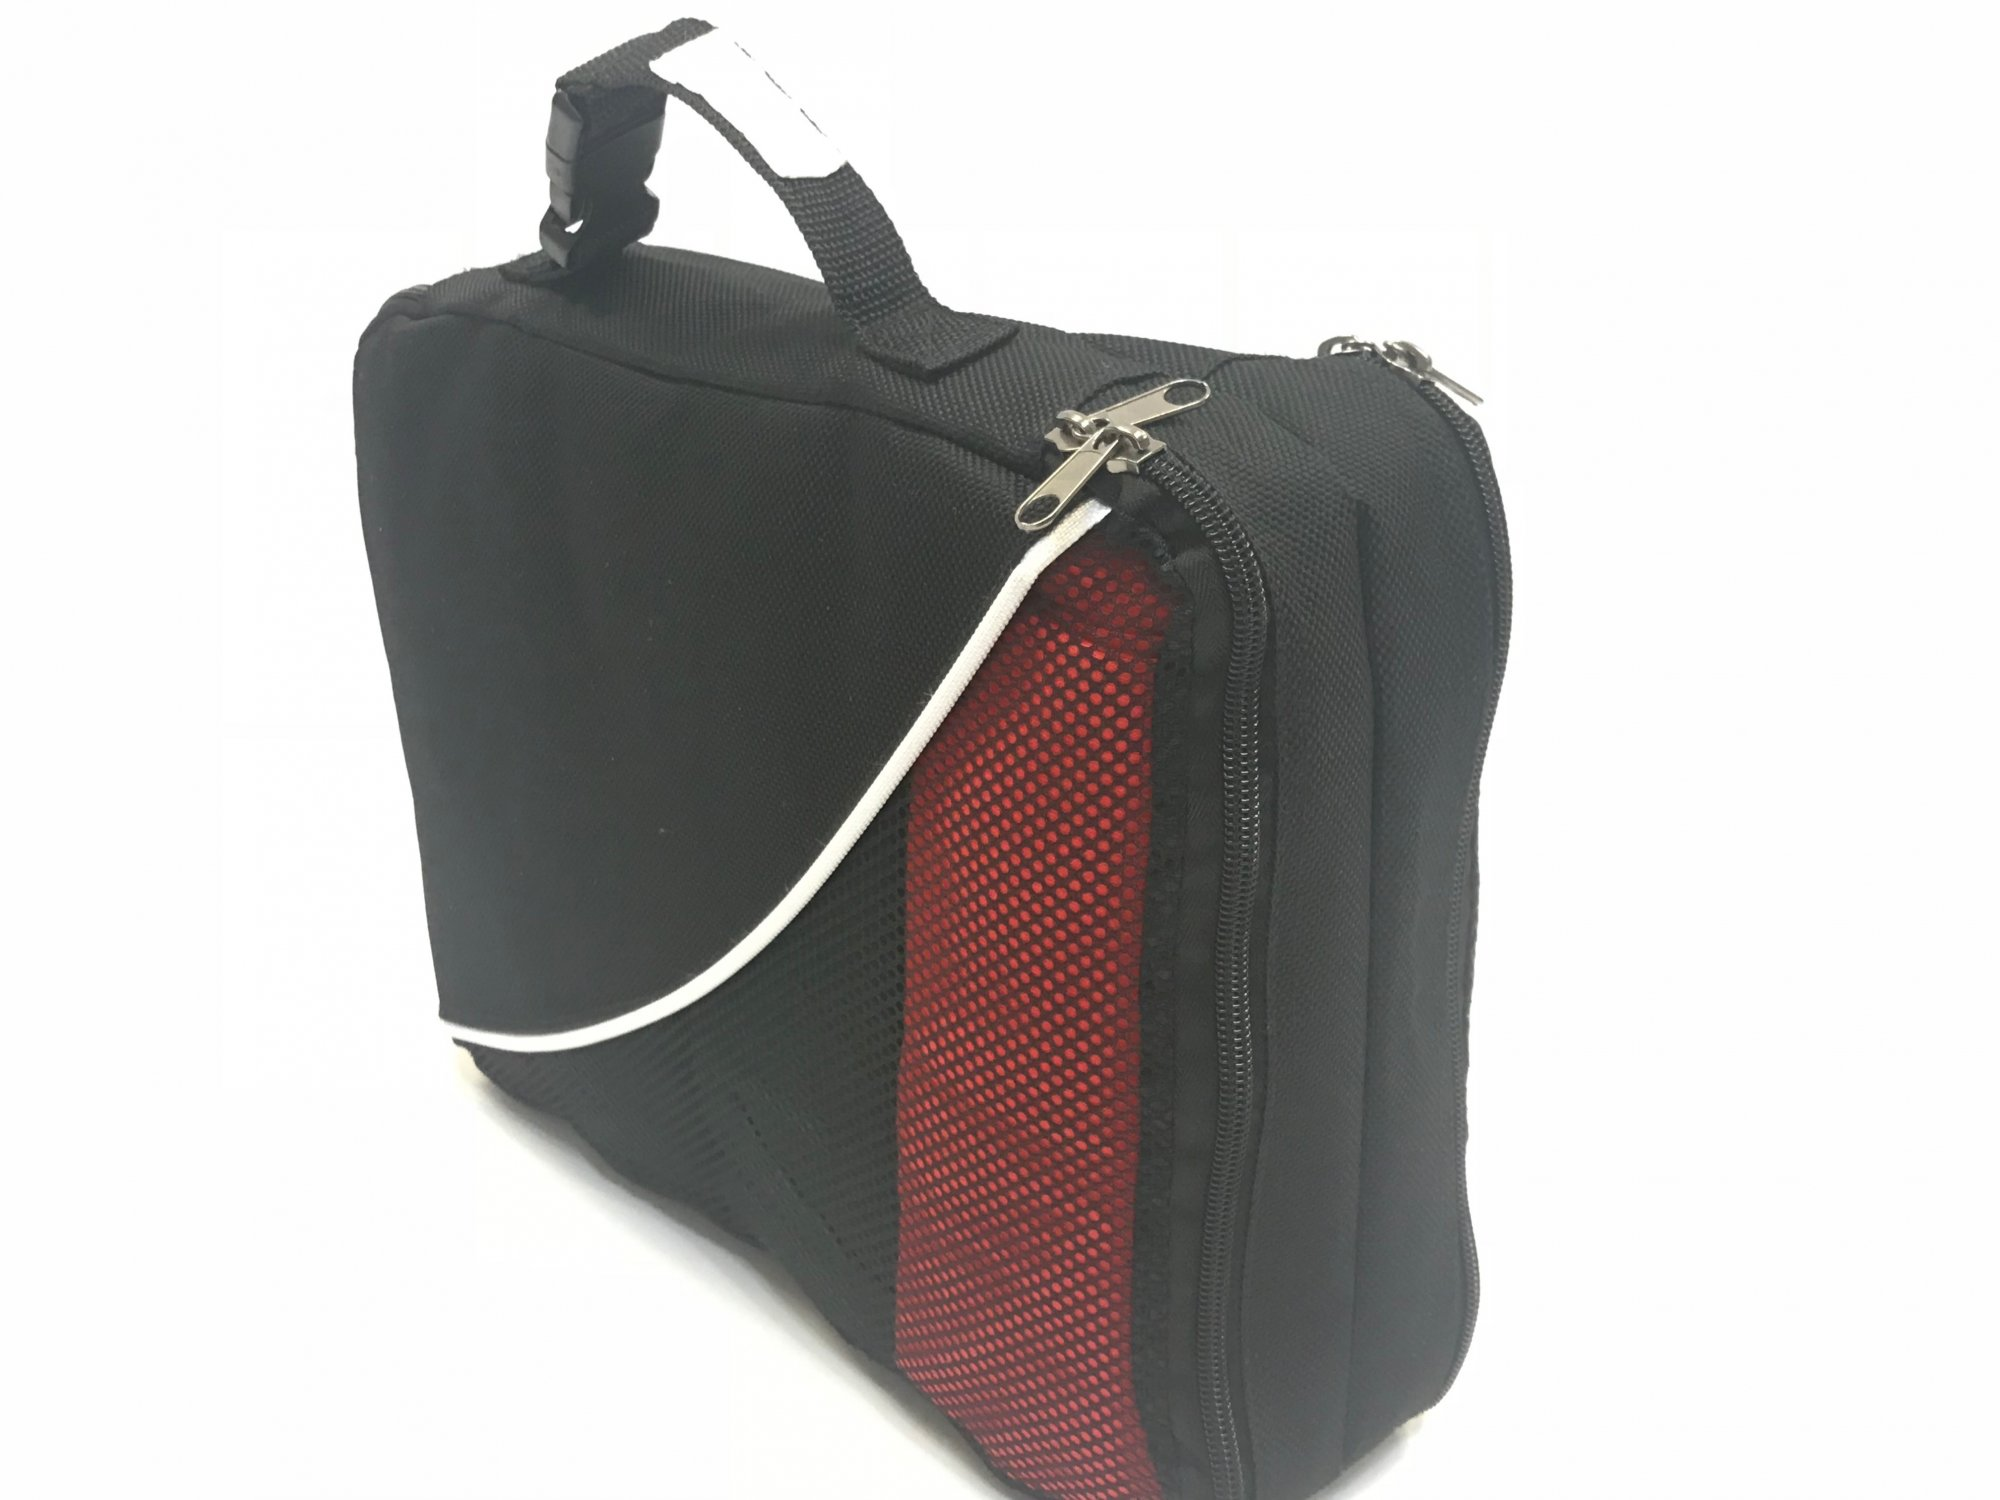 Packing Cube Double Sided Deluxe Black w/Mesh